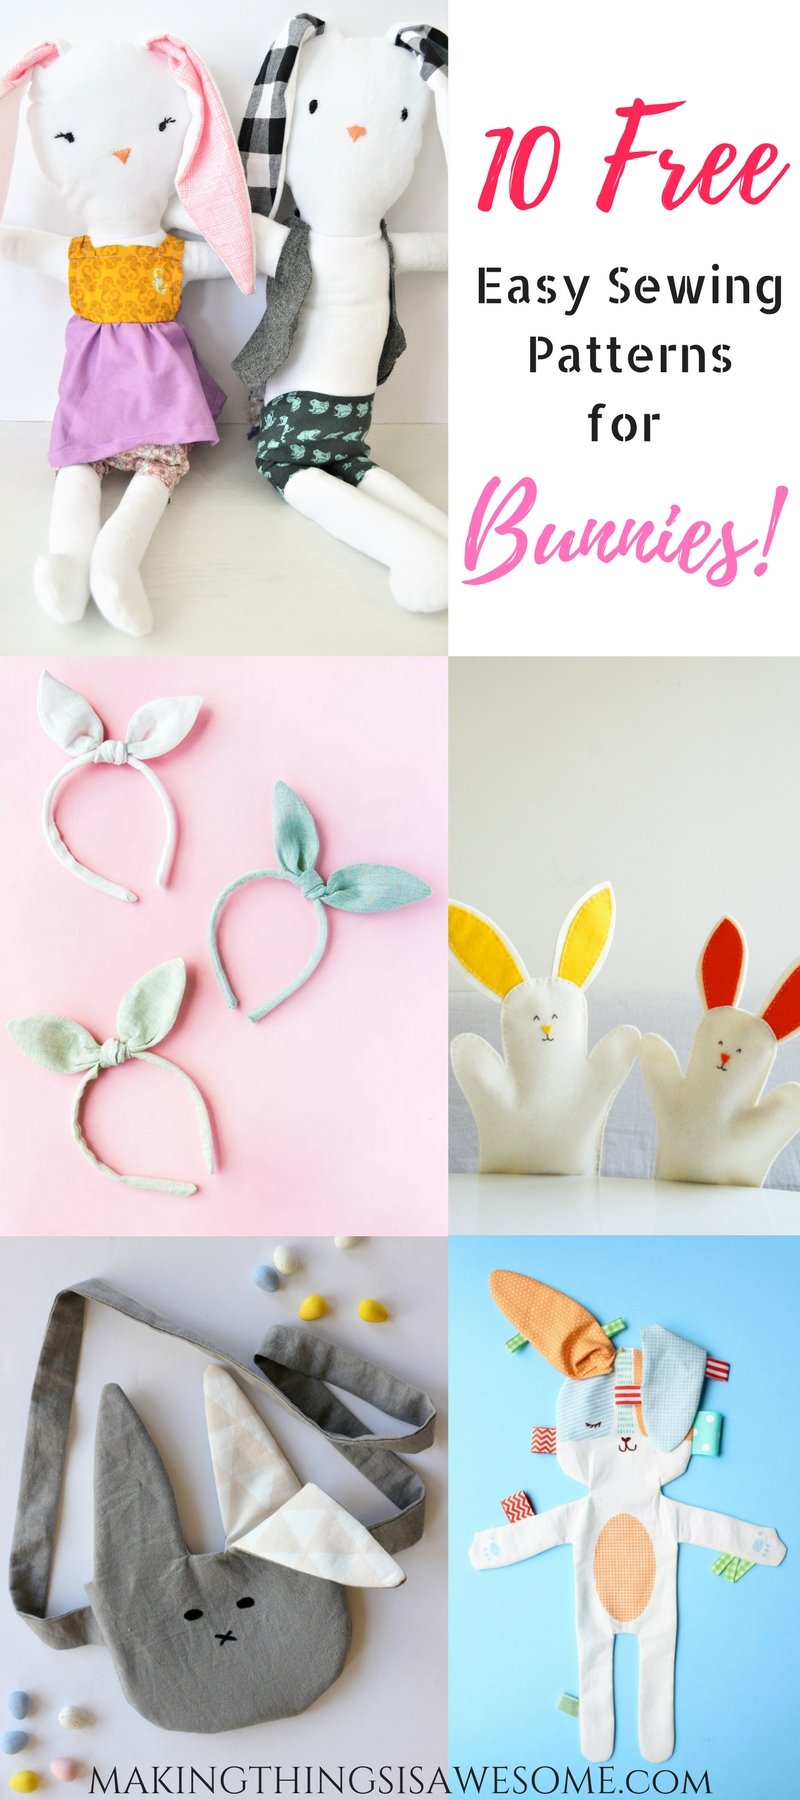 10 free easy sewing patterns for bunnies round up making 10 free easy sewing patterns for bunnies round up jeuxipadfo Images